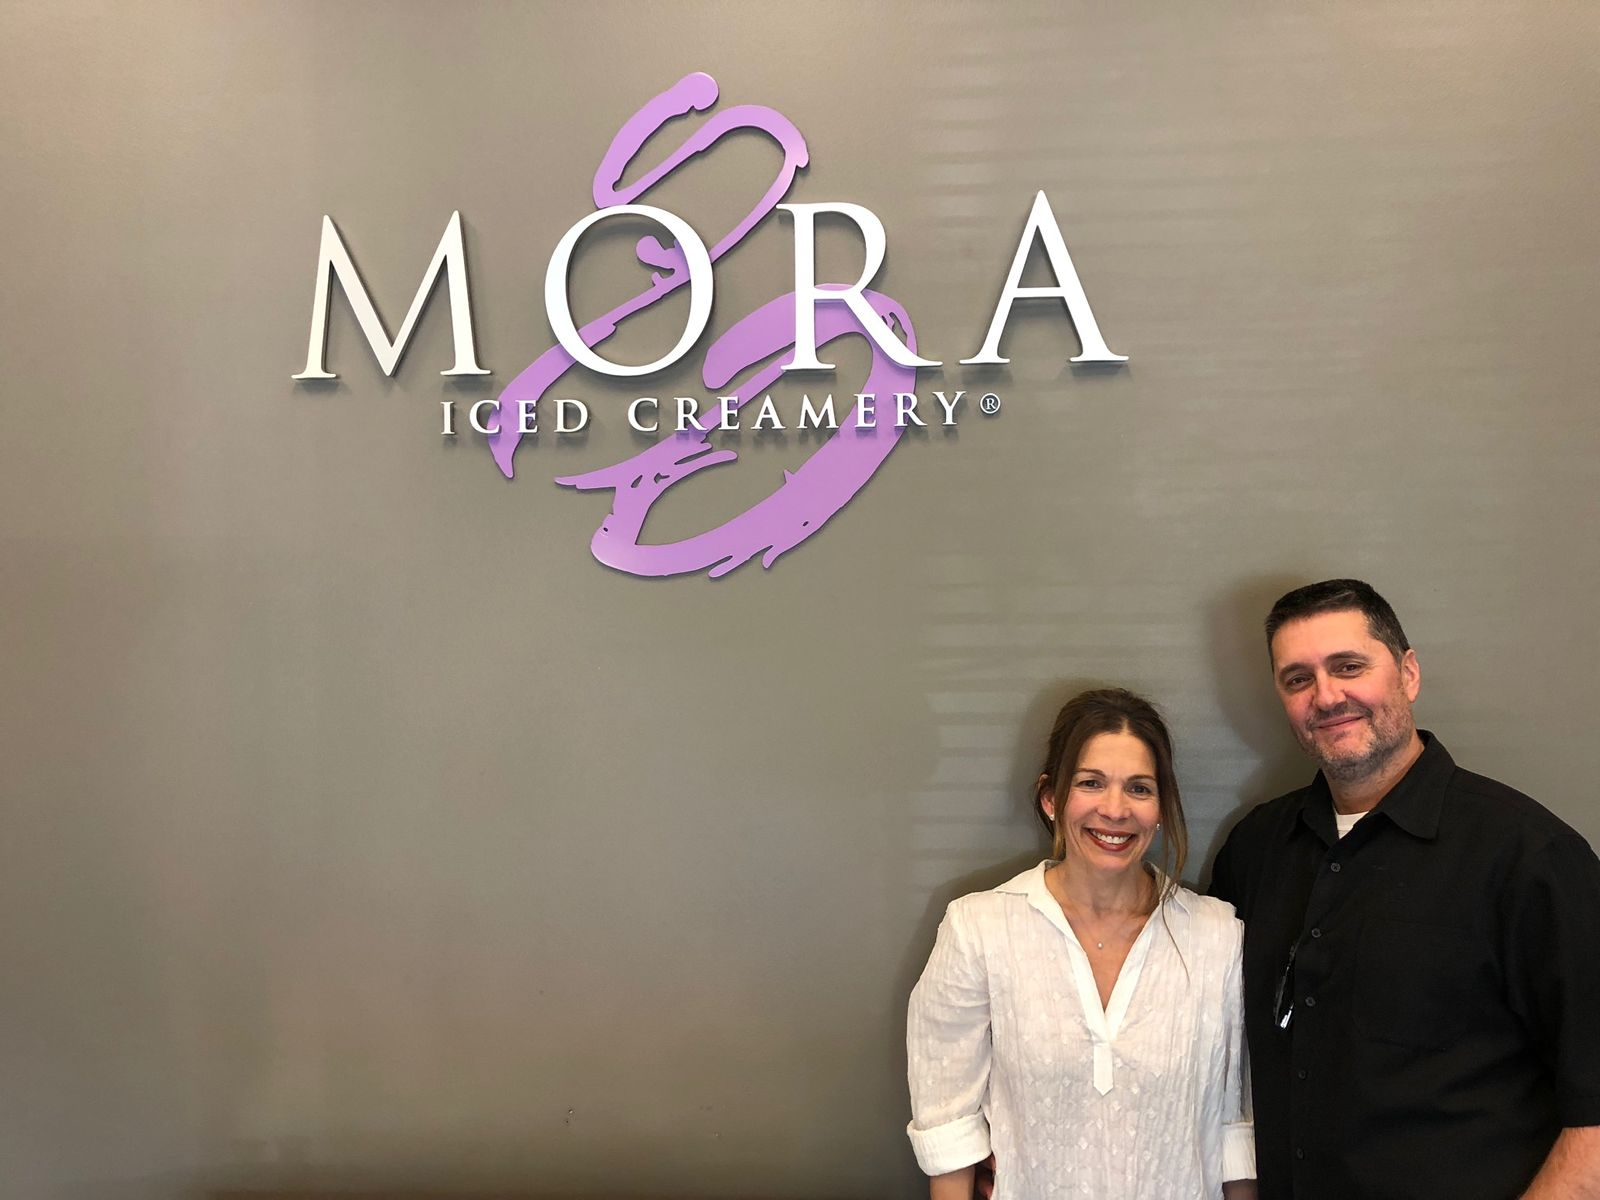 Ana Orselli and Jerry Perez Mora Iced Creamery Founders